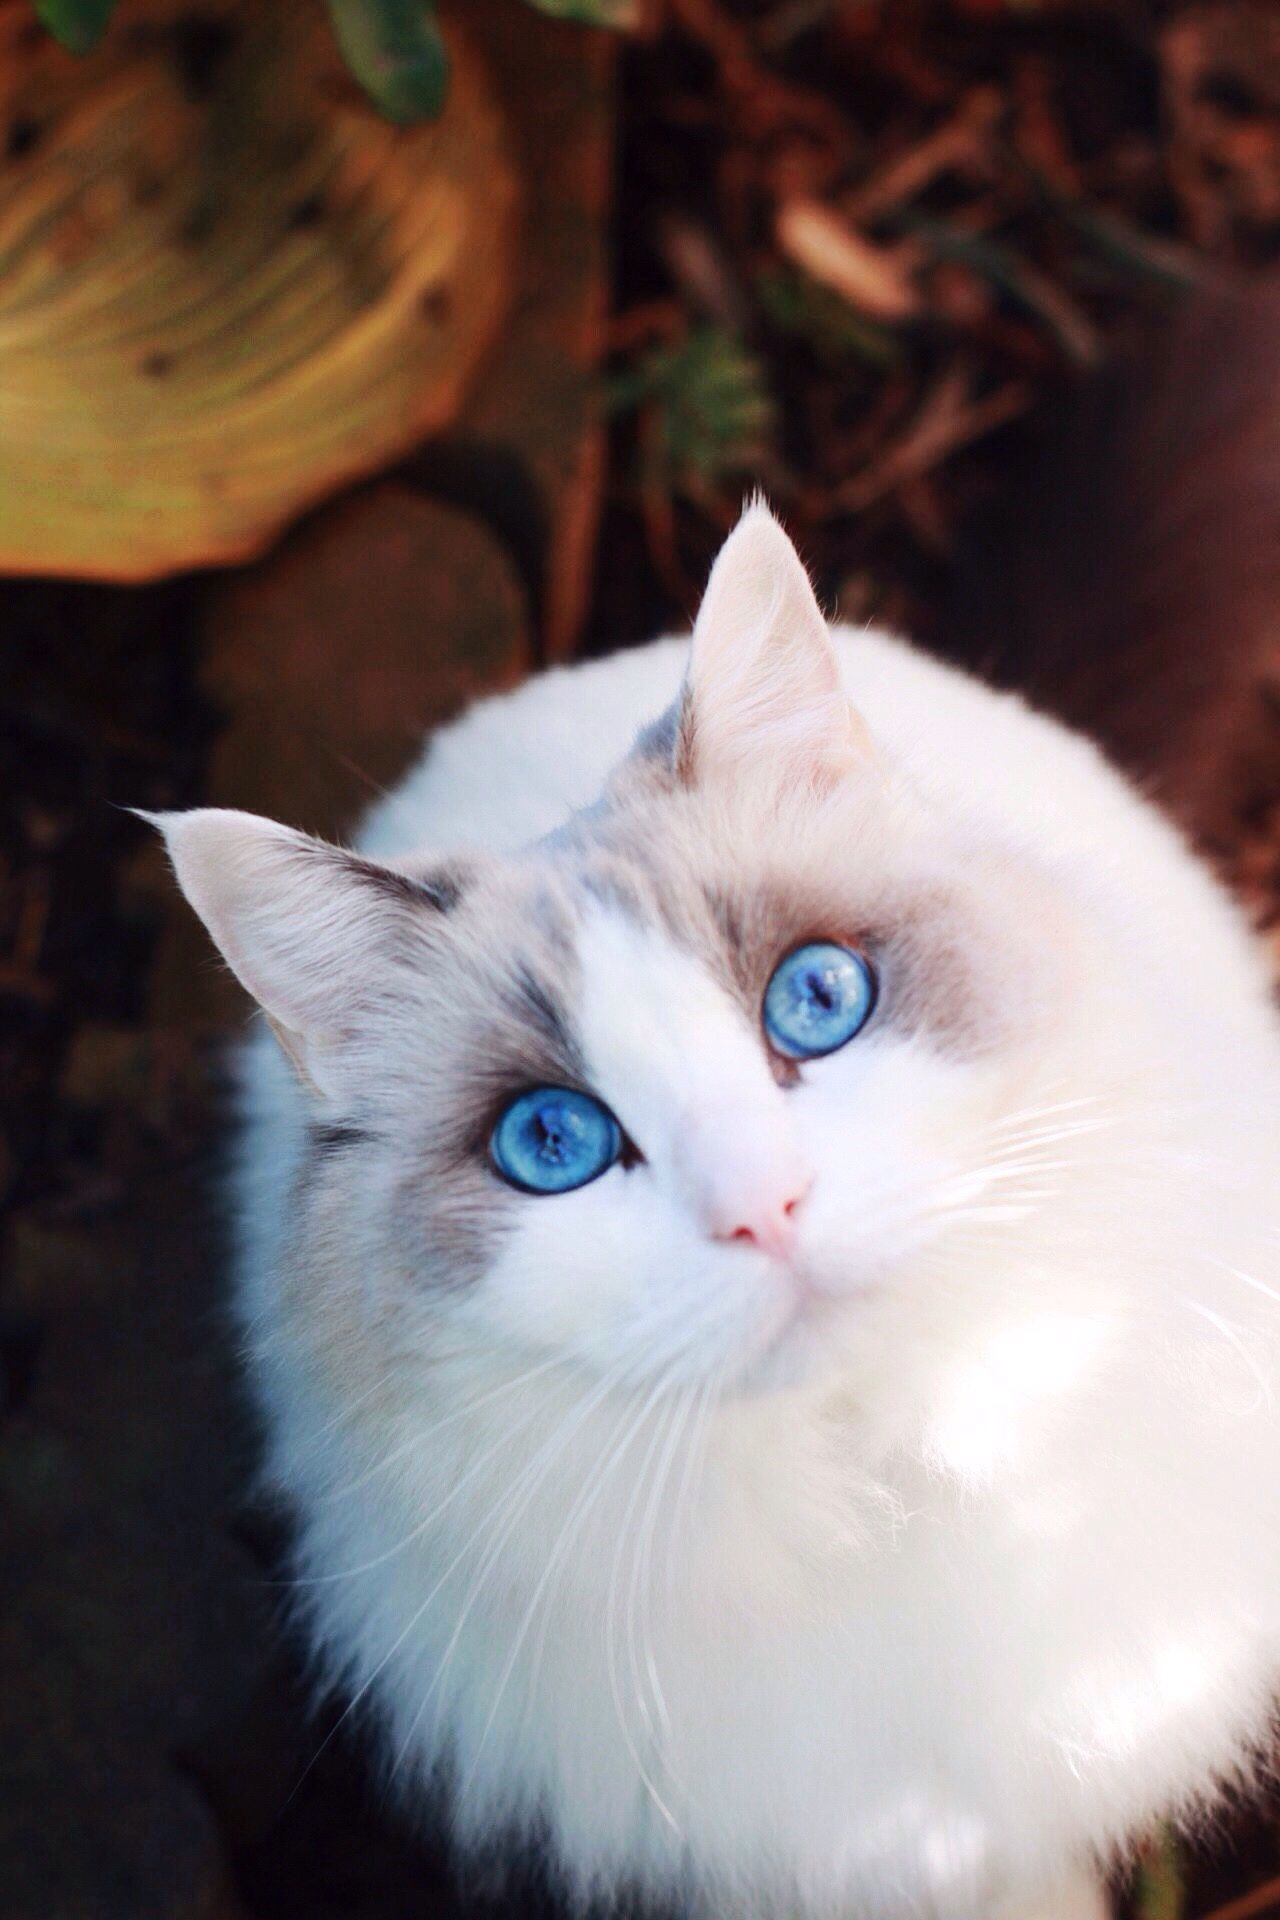 Domestic Cat Pets Domestic Animals Mammal Ragdoll Blue Eyes Autumn Leaves Pet Photography  Lookingup Looking At CameraOne Animall cat] one animaLooking At CamerarFocus On ForegroundnFelinenNo PeoplelClose-upuPortraitiIndoors rDayay